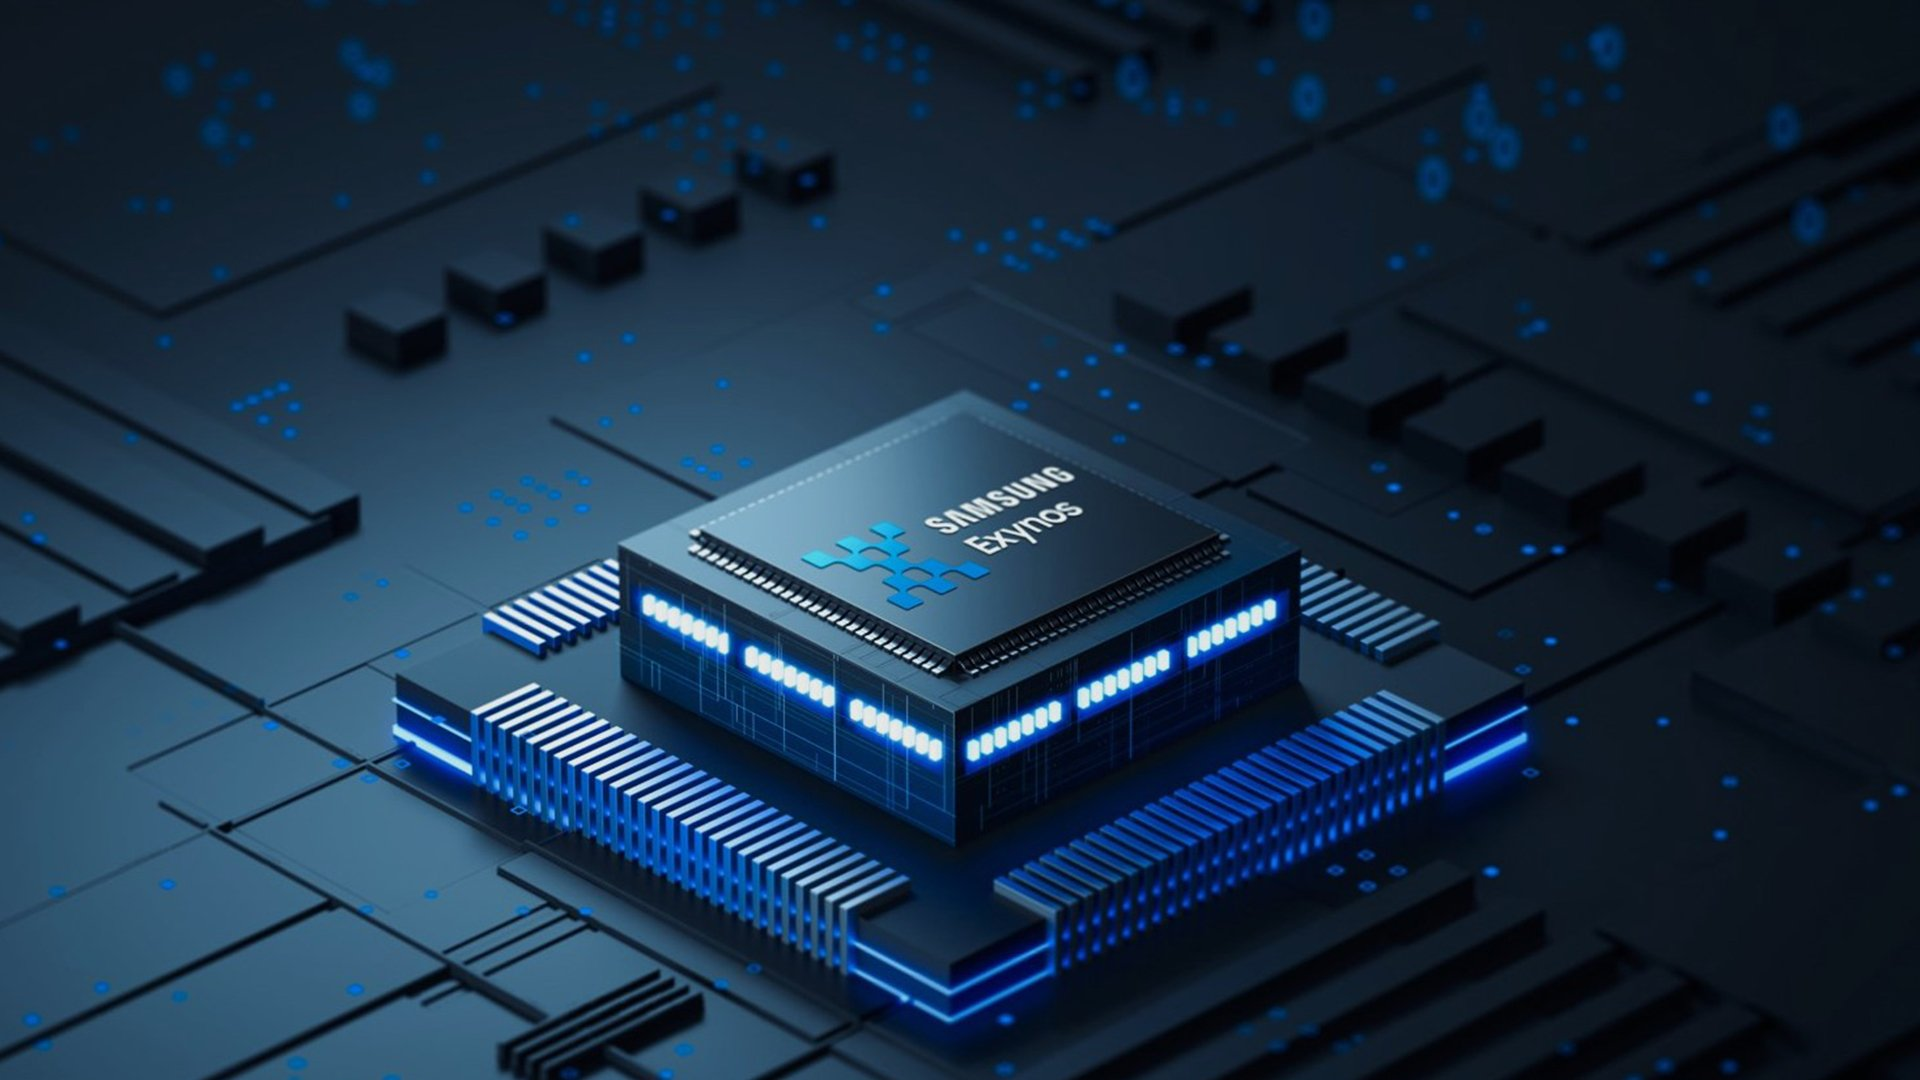 Samsung Exynos 2200 Chipsets To Make Its Way To Laptops And Smartphones In The Second Half Of 2021